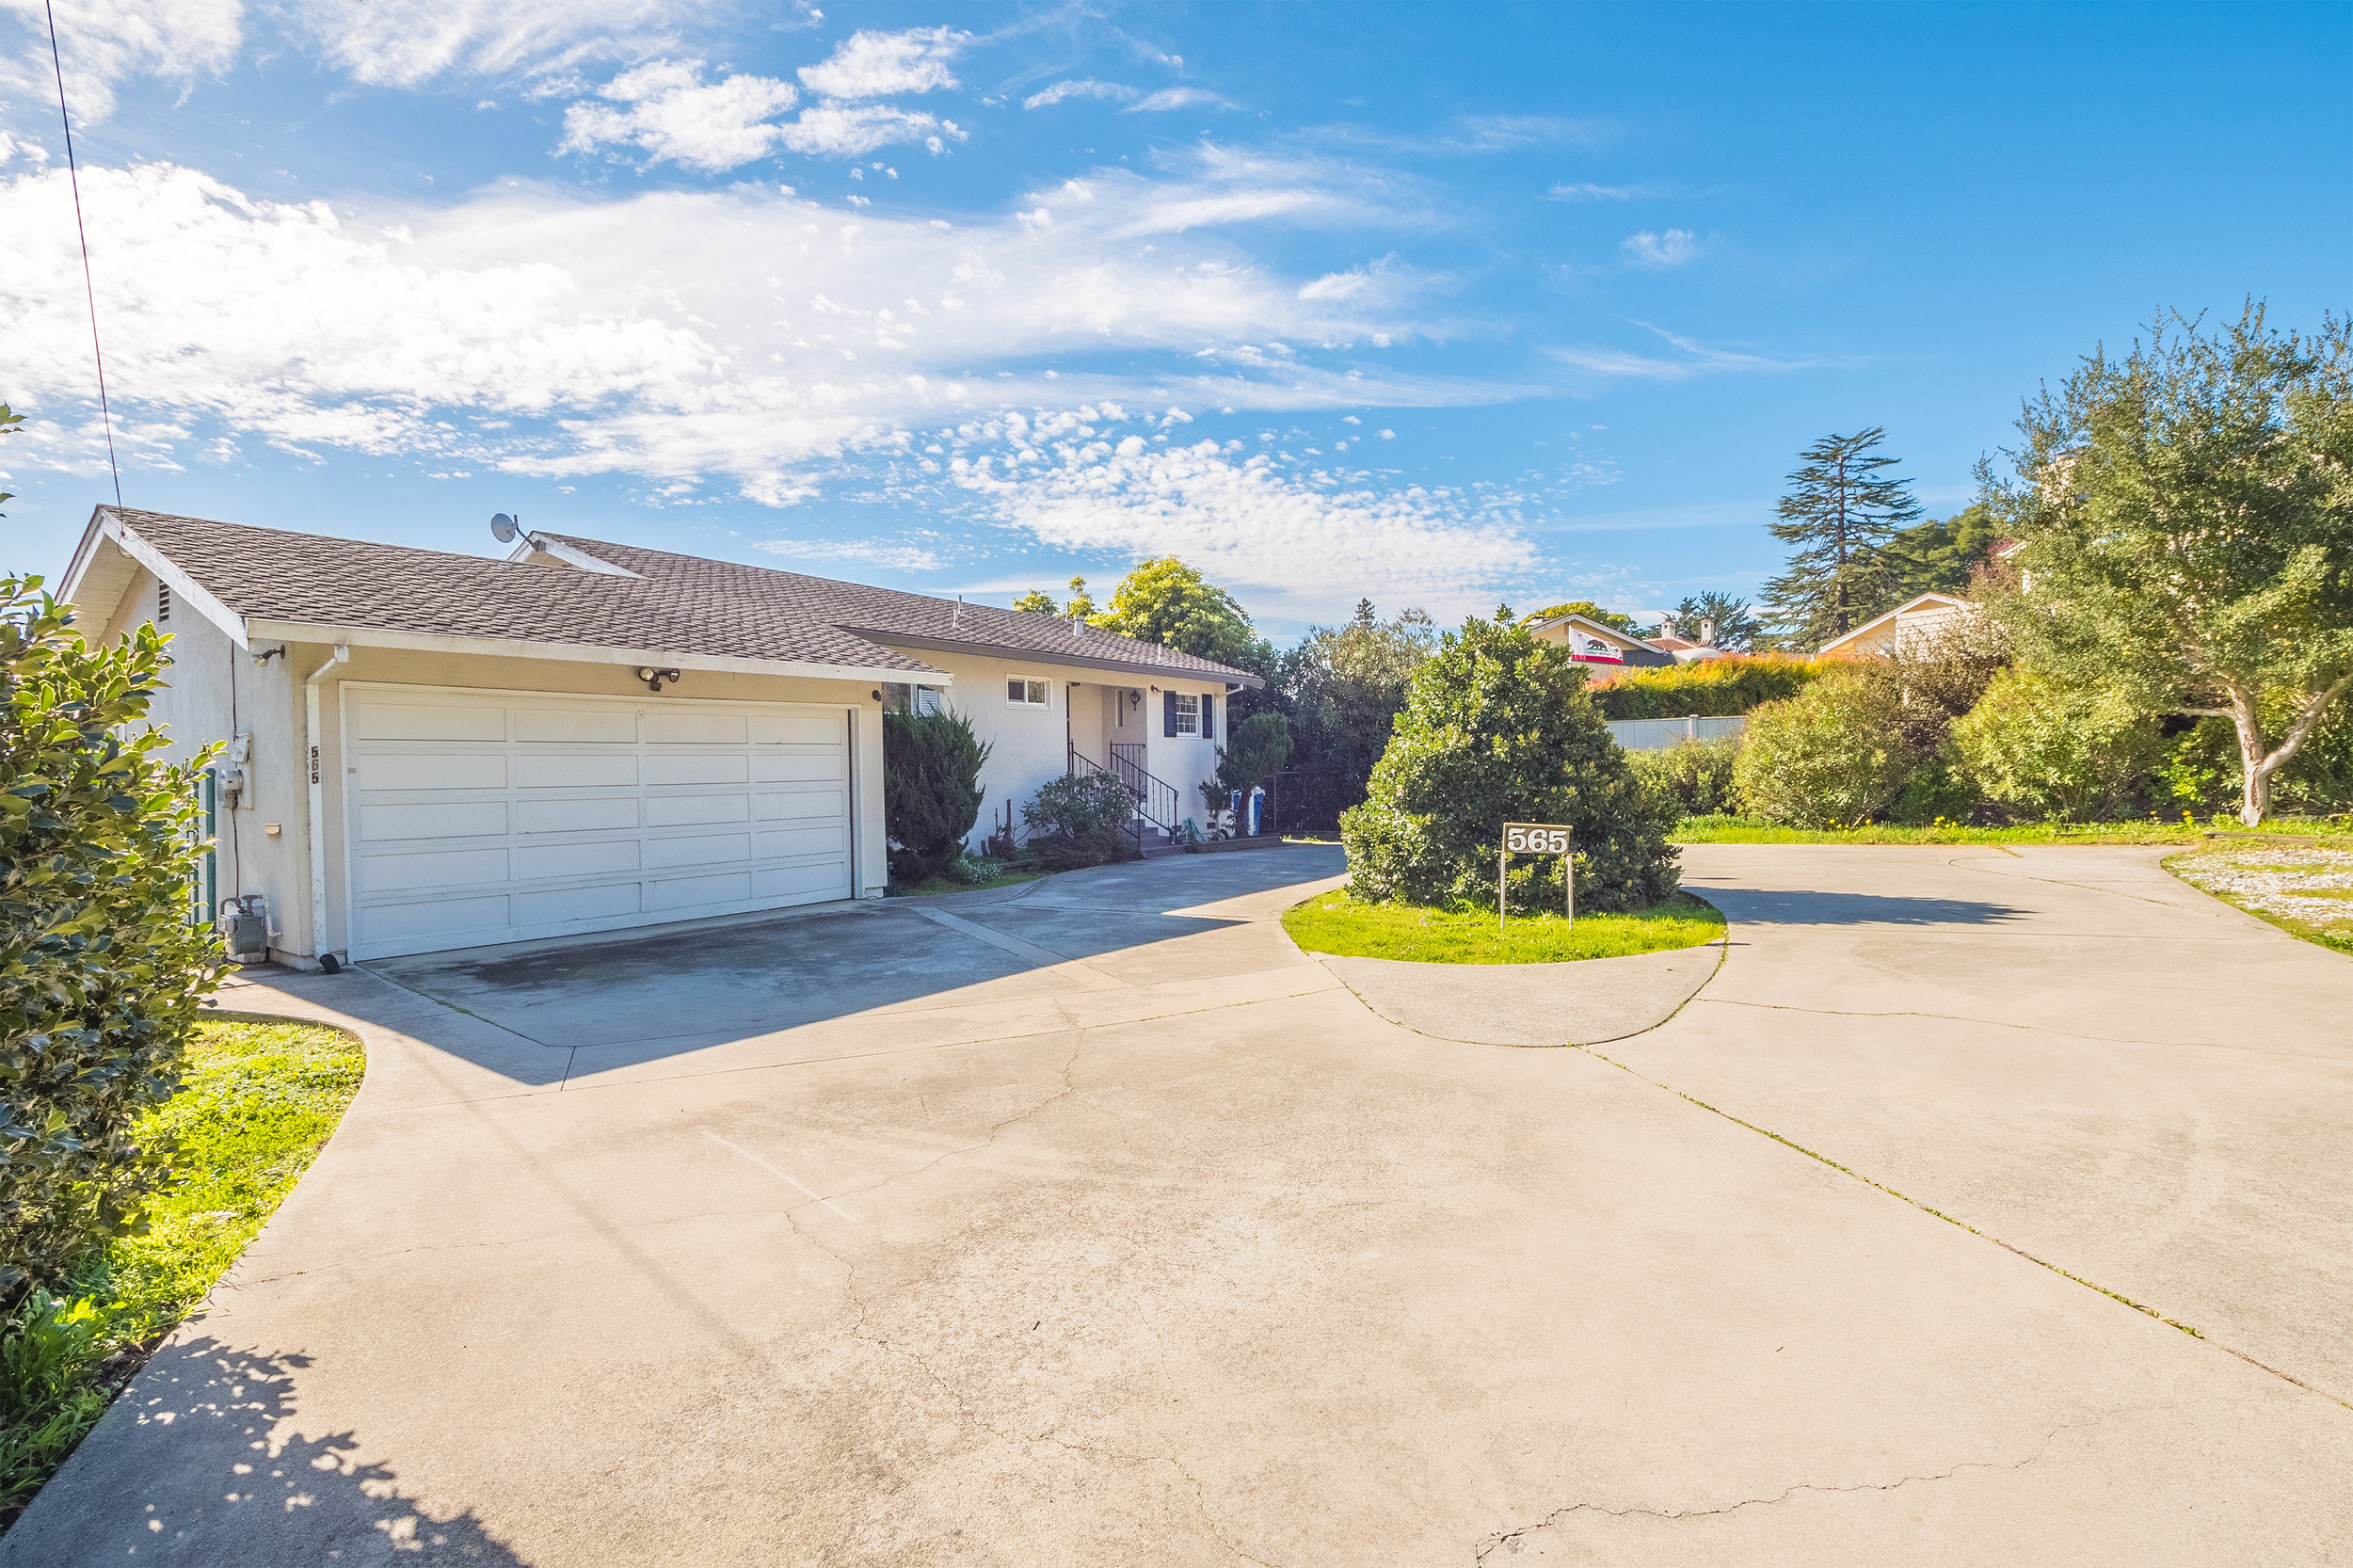 Large Driveway and Two-Car Garage Westside Santa Cruz Real Estate.jpg